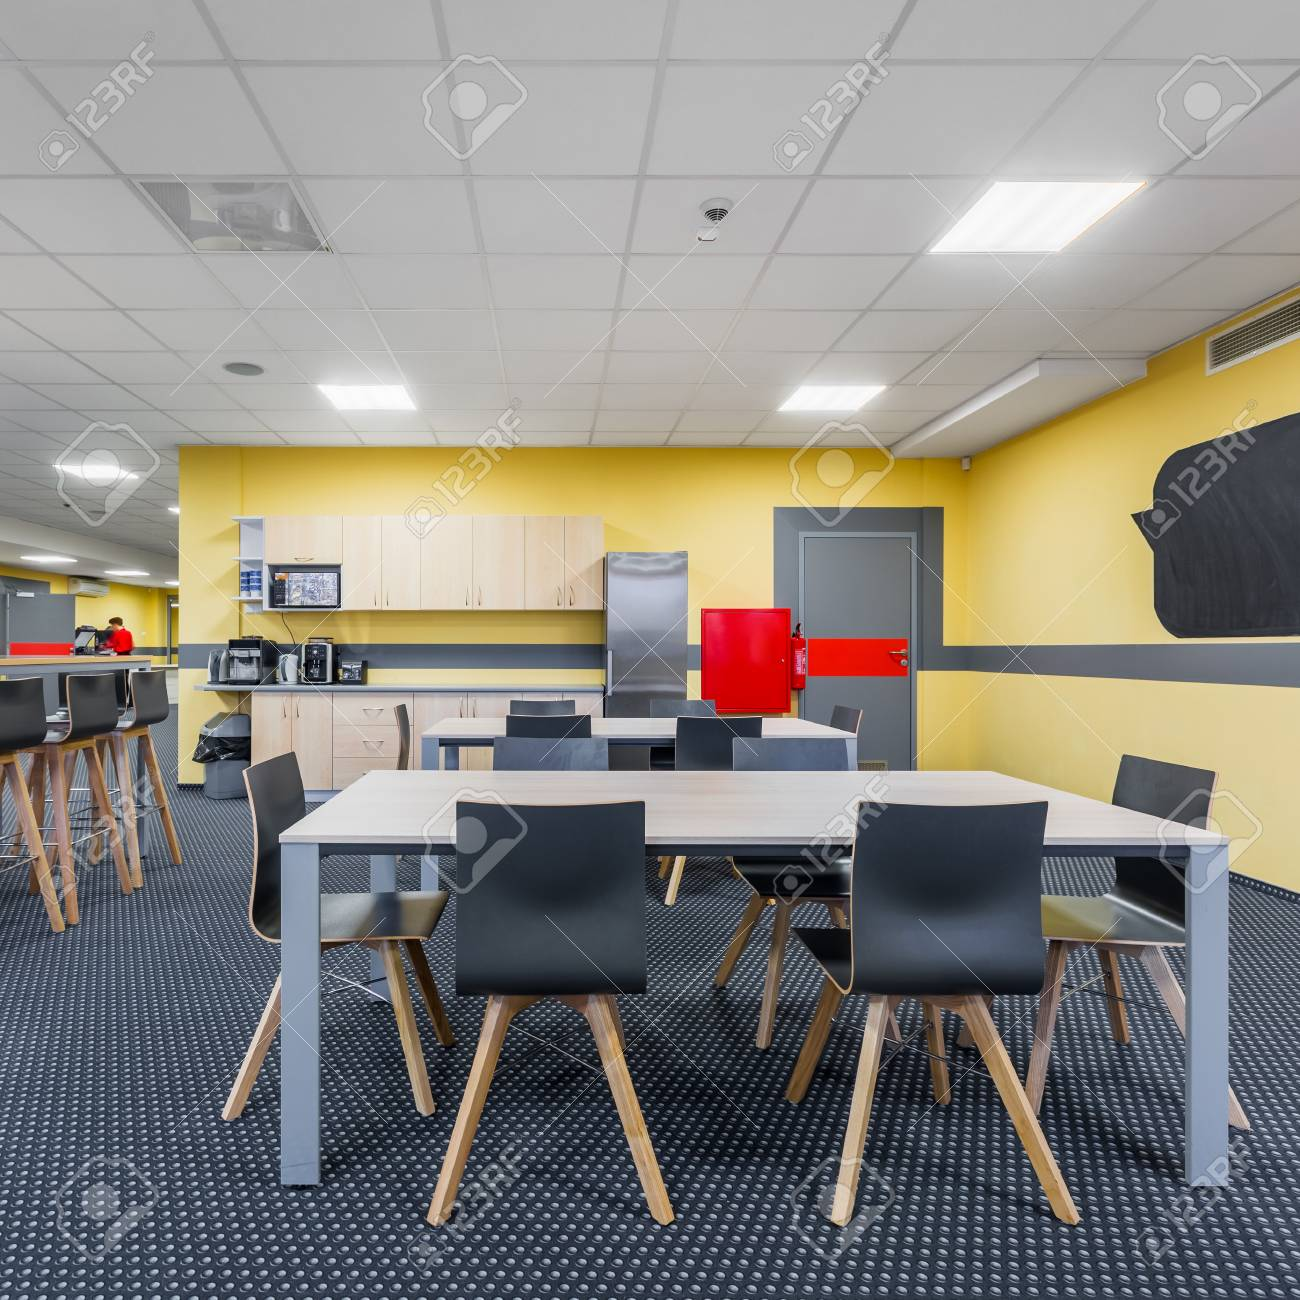 Modern Lunchroom Interior With Wooden Tables And Black Chairs 1300x1300